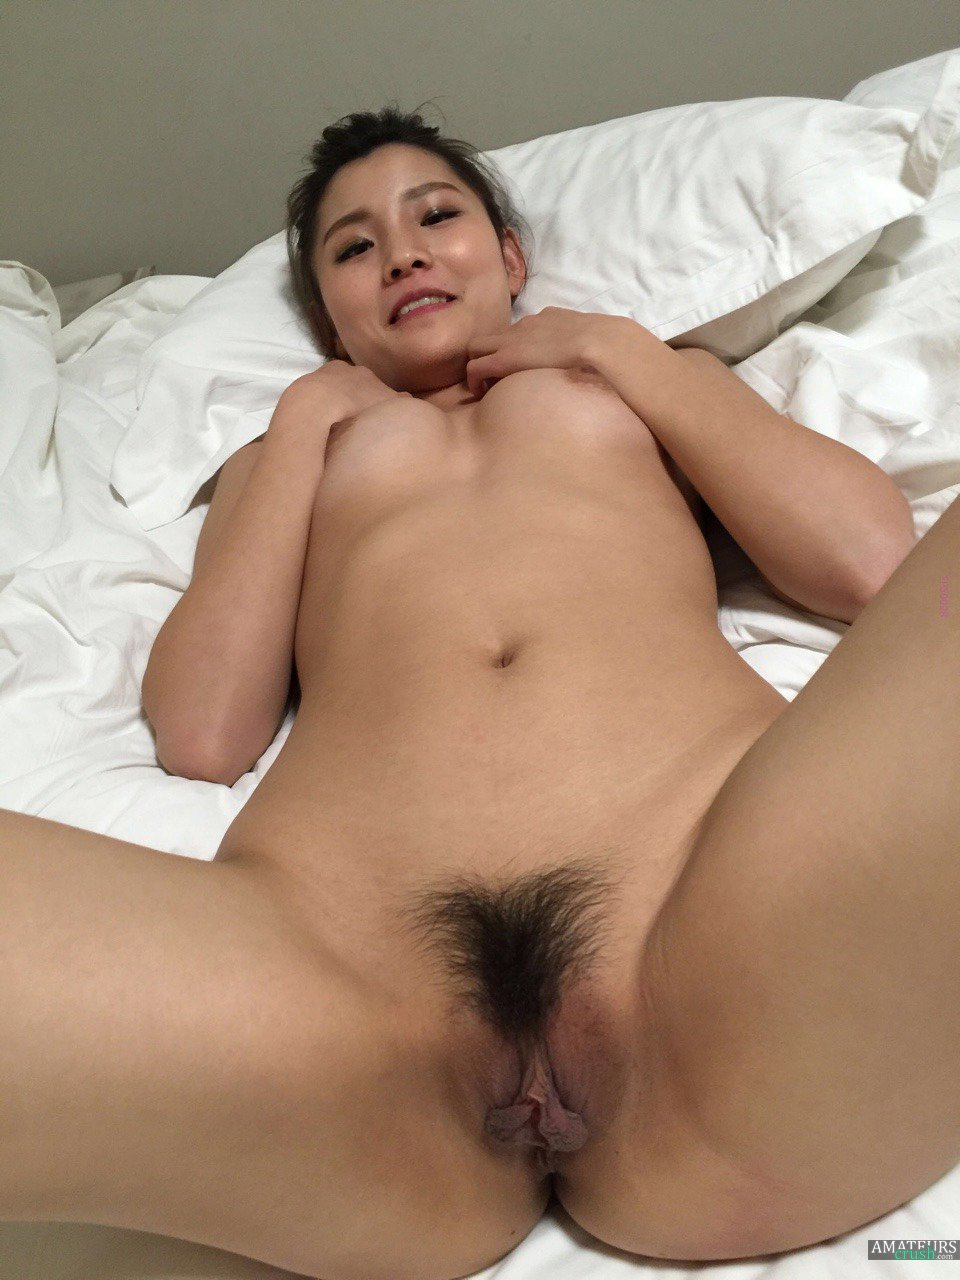 Hot nude Chinese waiting to get fucked on bed with her hairy pussy